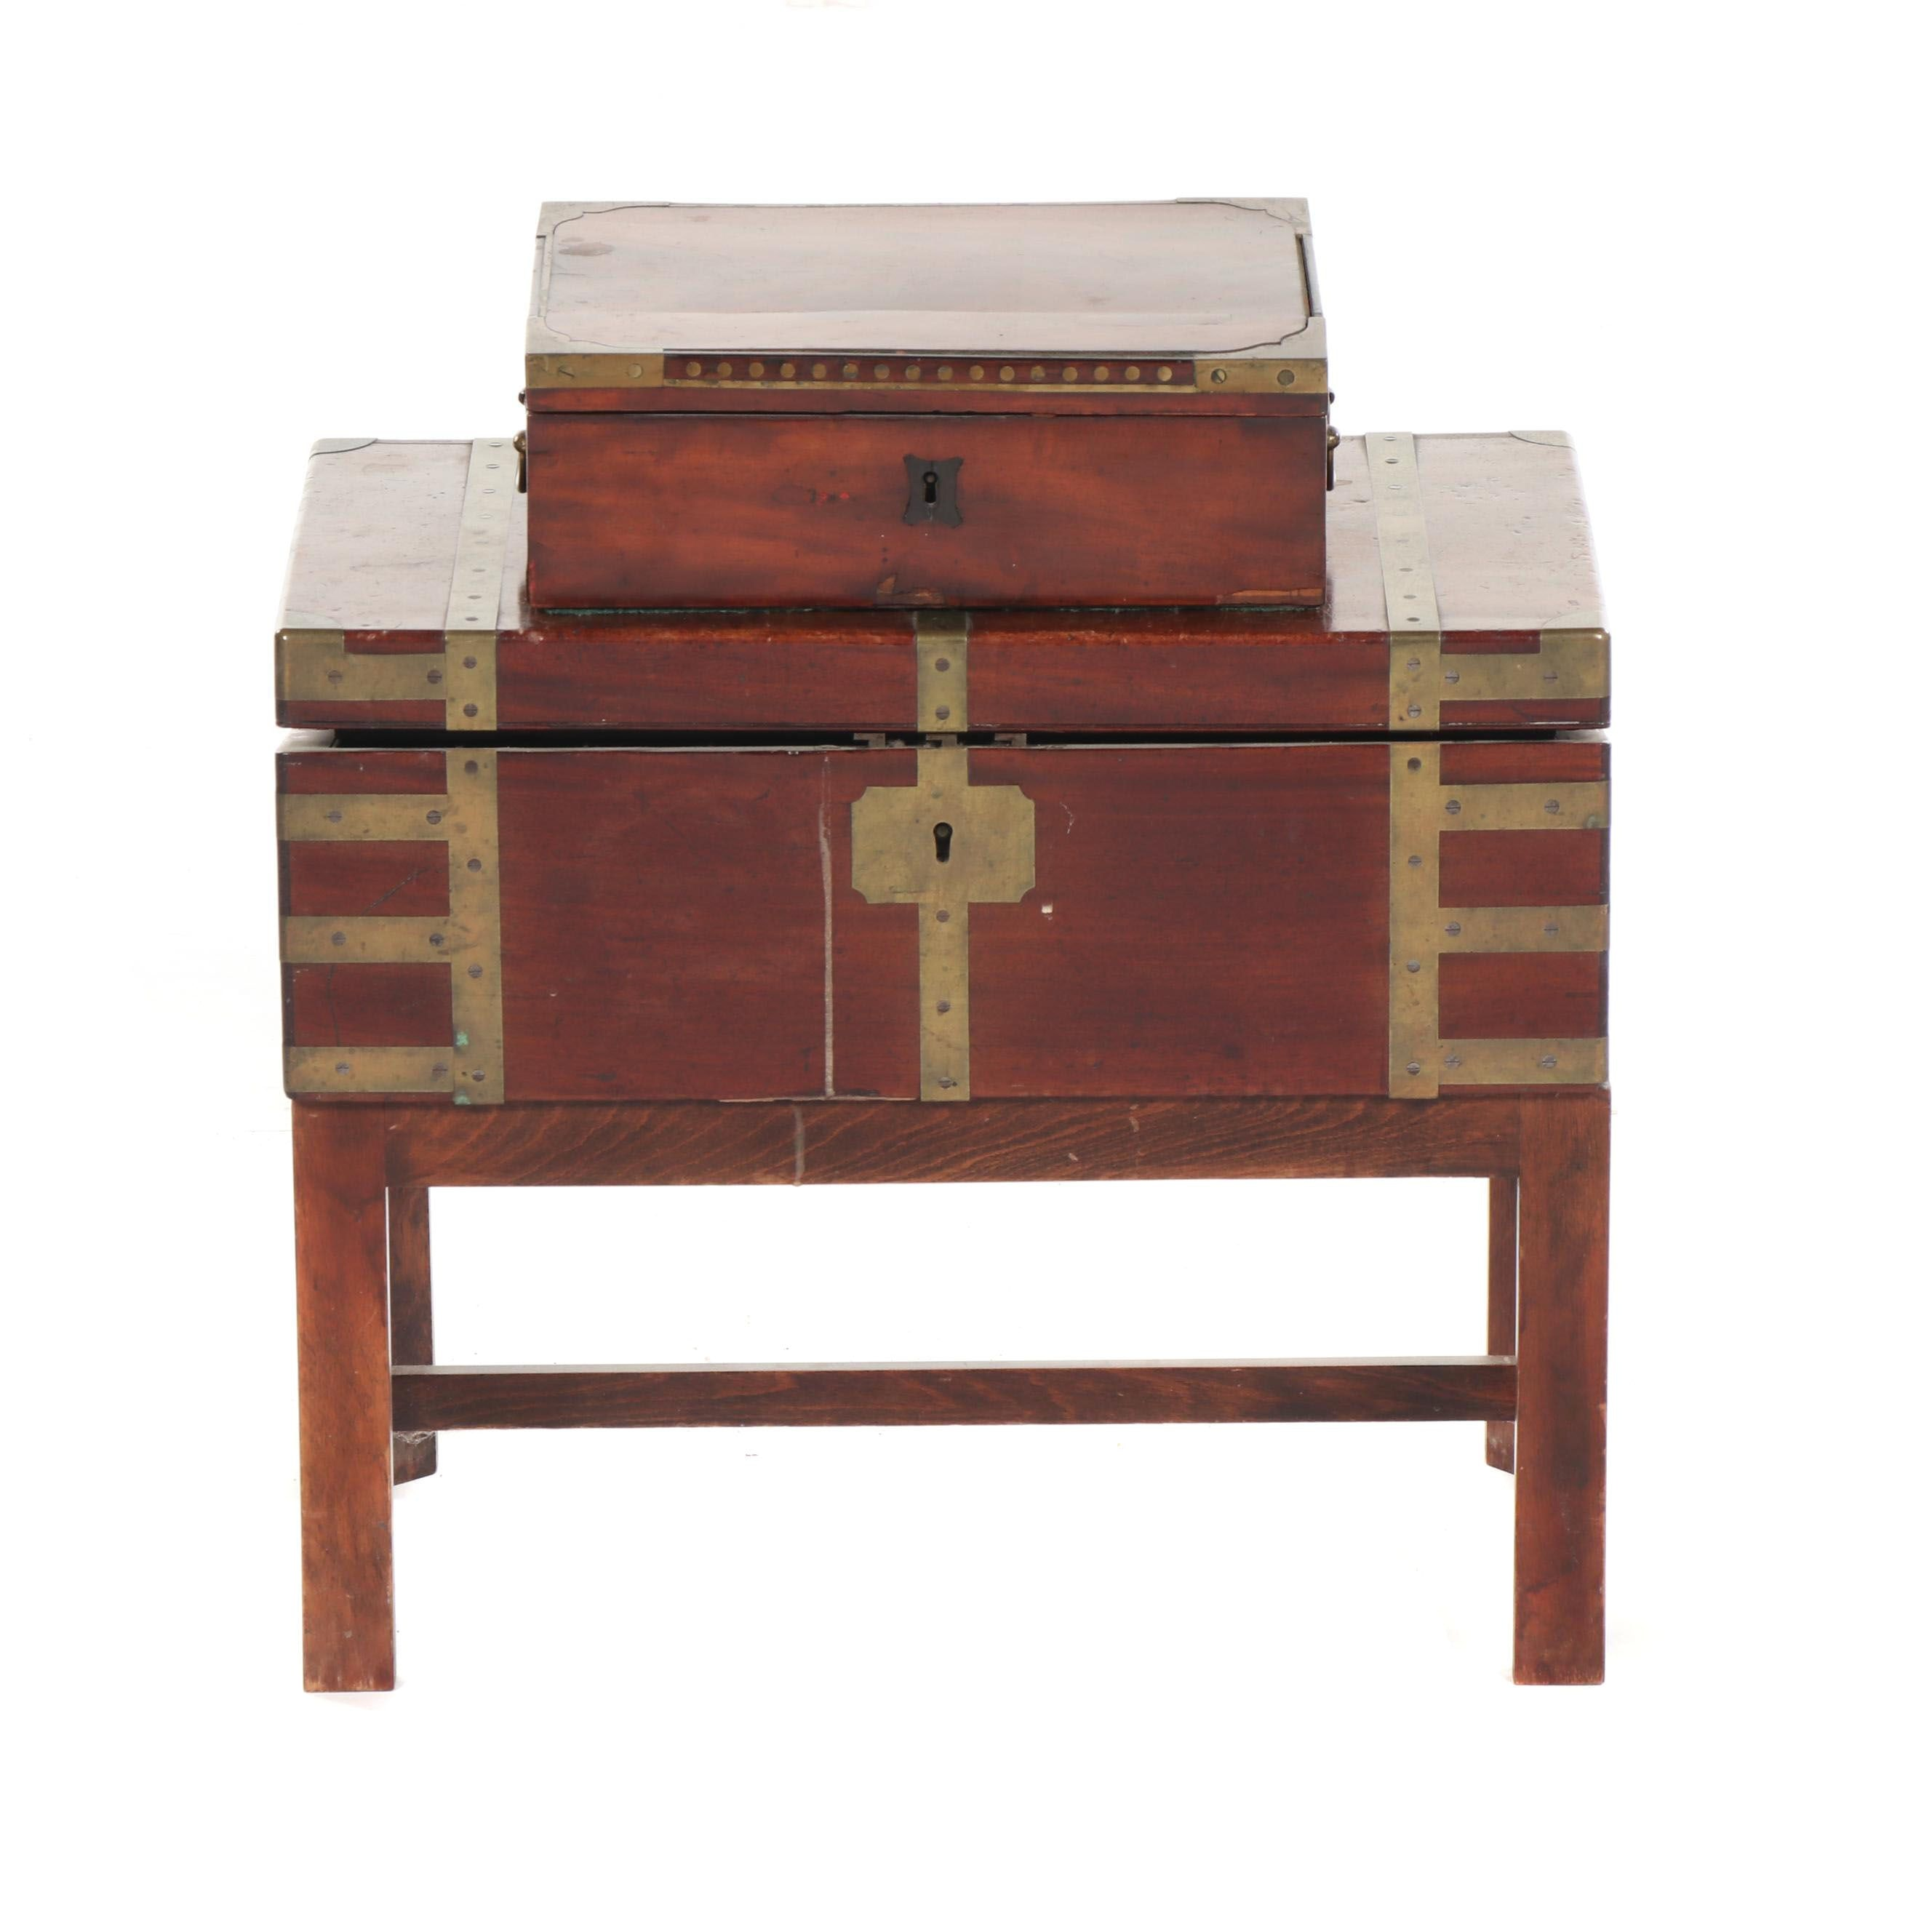 Campaign Style Mahogany Travel Desk Chest on Stand with Travel Box, 19th Century